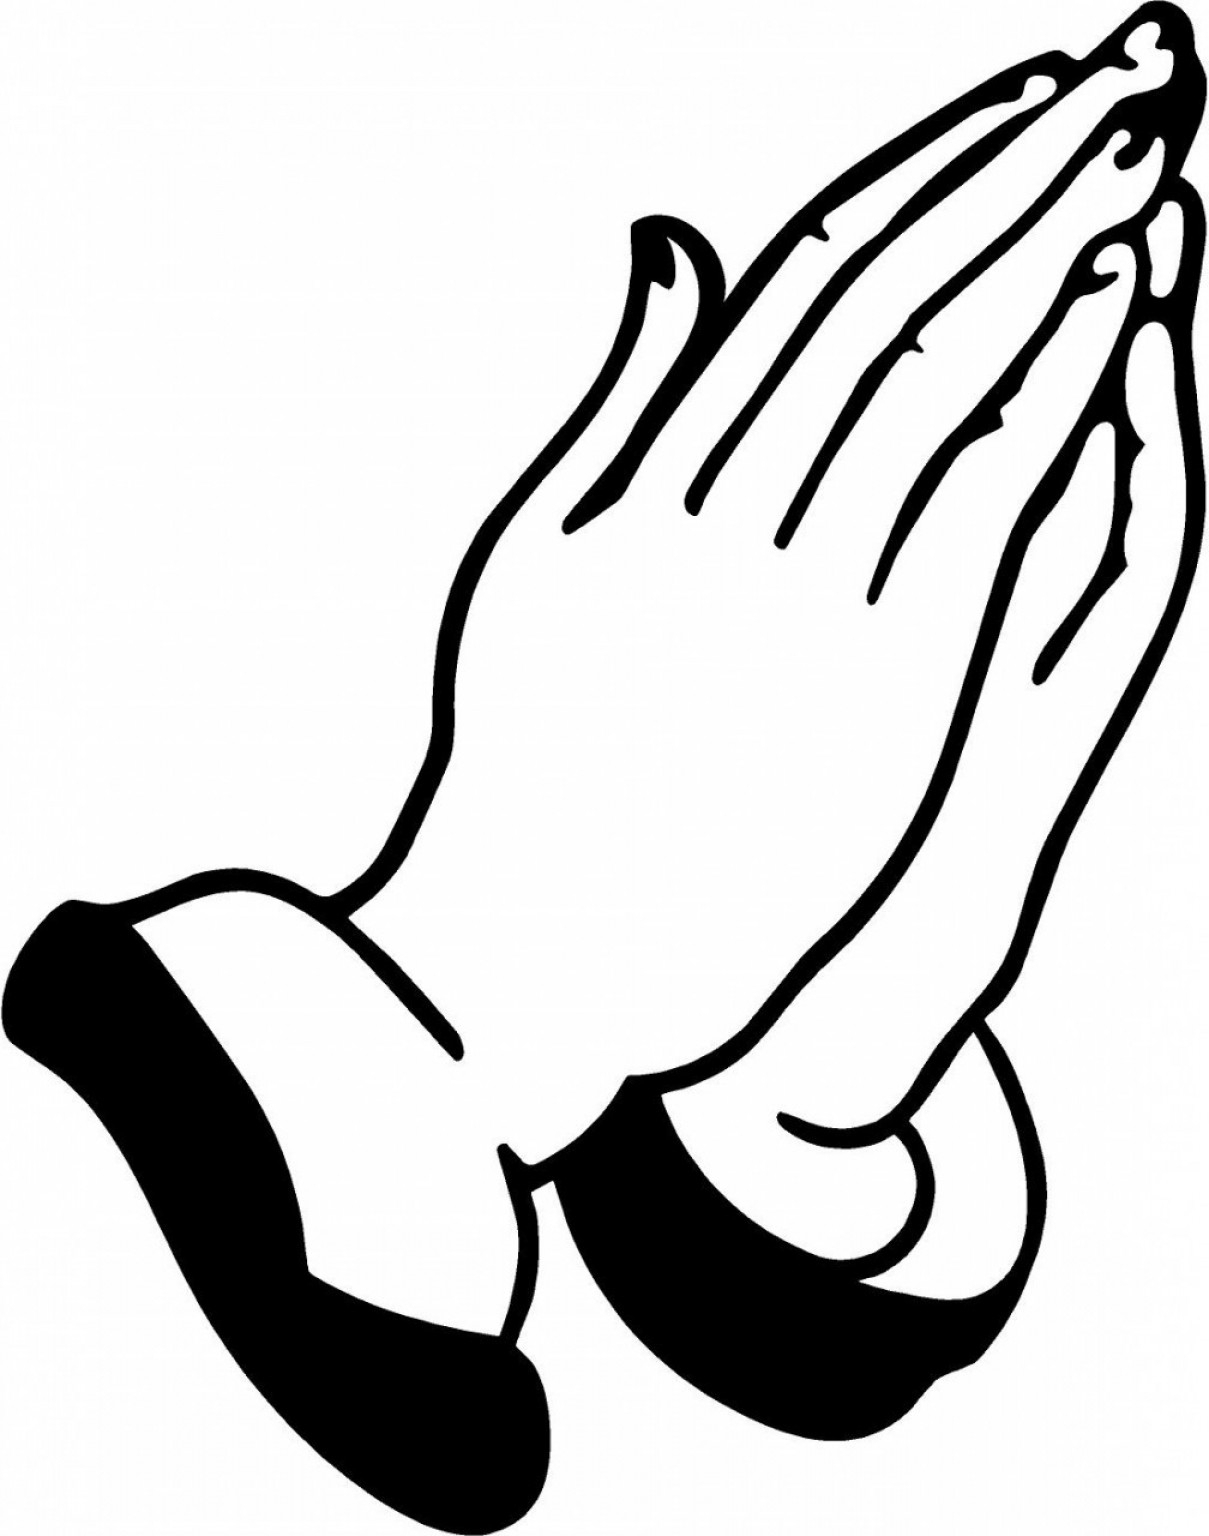 1209x1536 How To Draw Praying Hands Emoji Drawing Of Praying Hands Praying